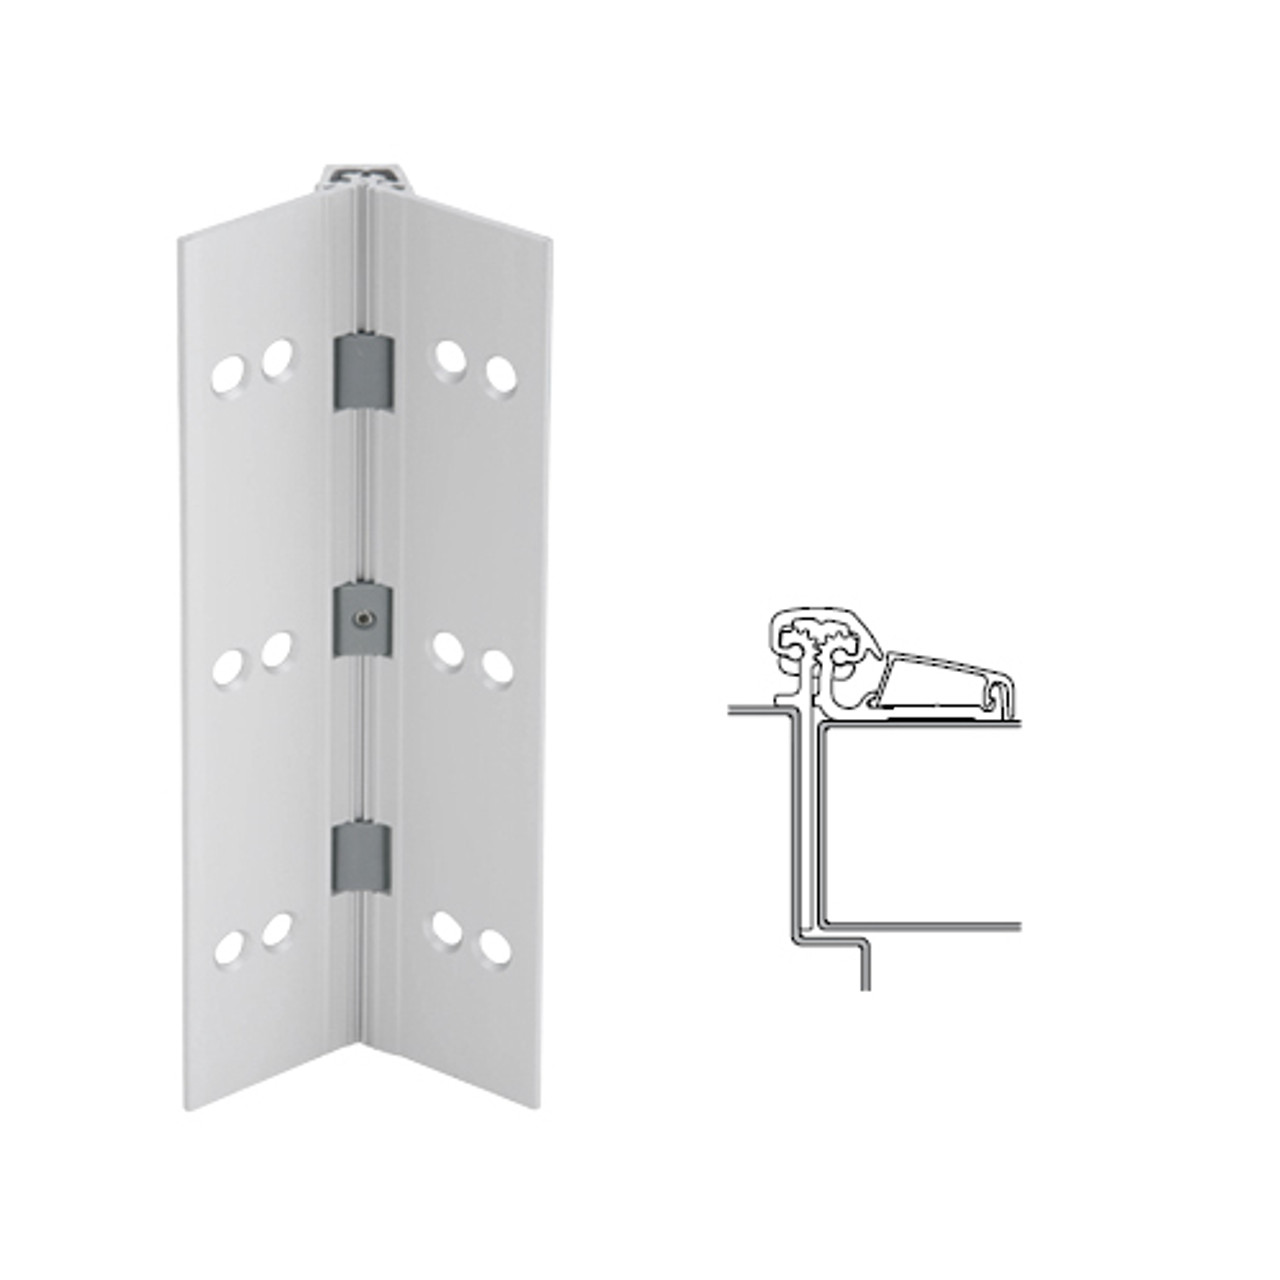 054XY-US28-85-SECWDWD IVES Adjustable Half Surface Continuous Geared Hinges with Security Screws - Hex Pin Drive in Satin Aluminum